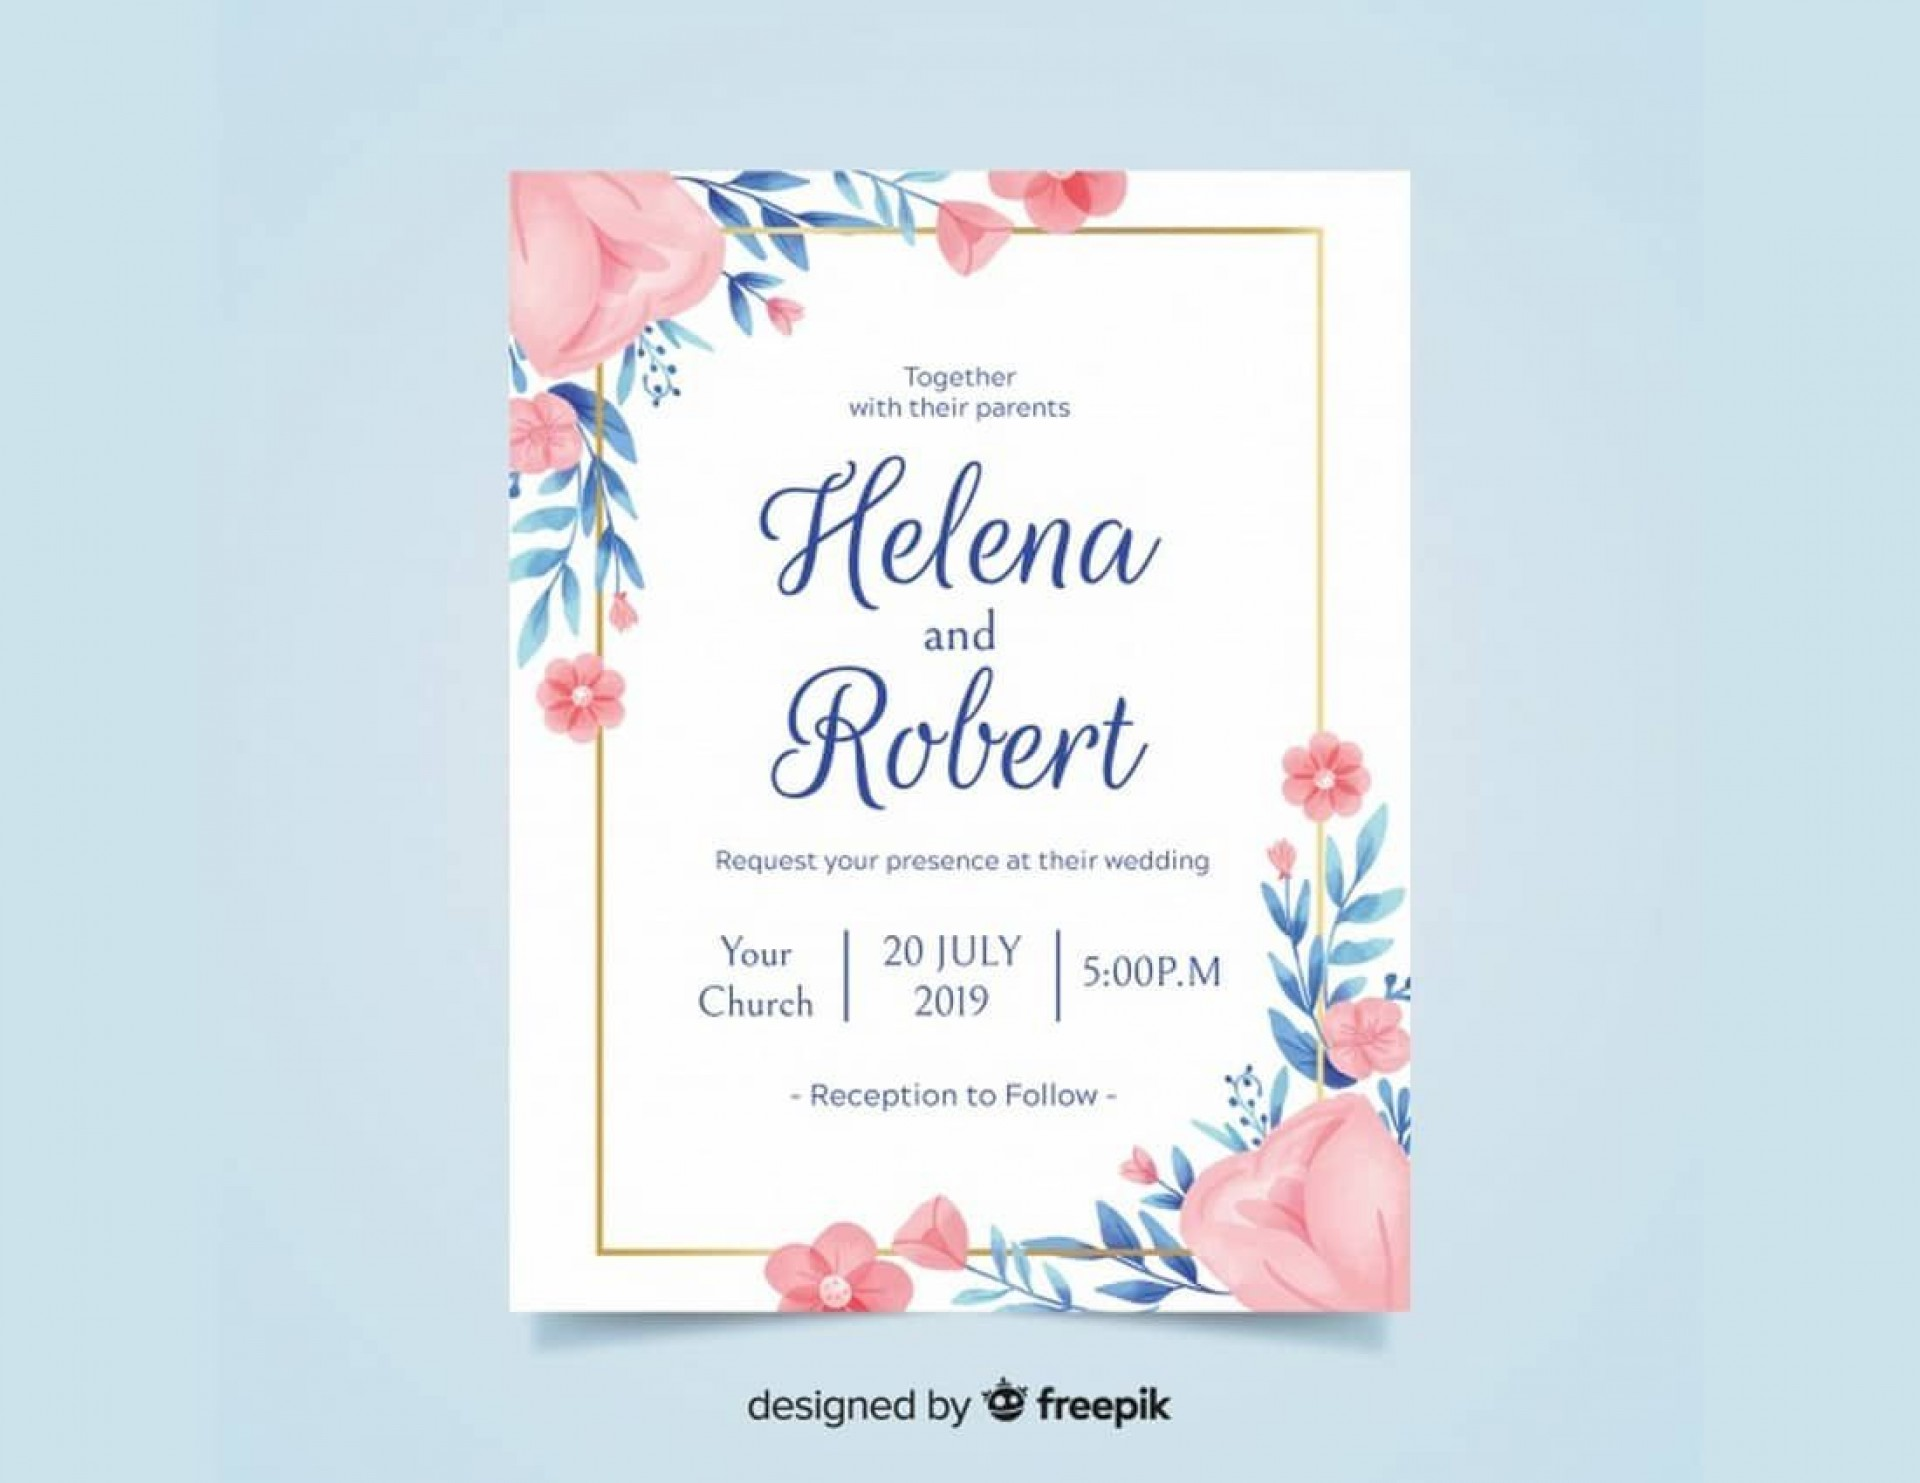 007 Breathtaking Microsoft Word Invitation Template High Def  Templates Baby Shower Free Graduation Announcement For Wedding1920